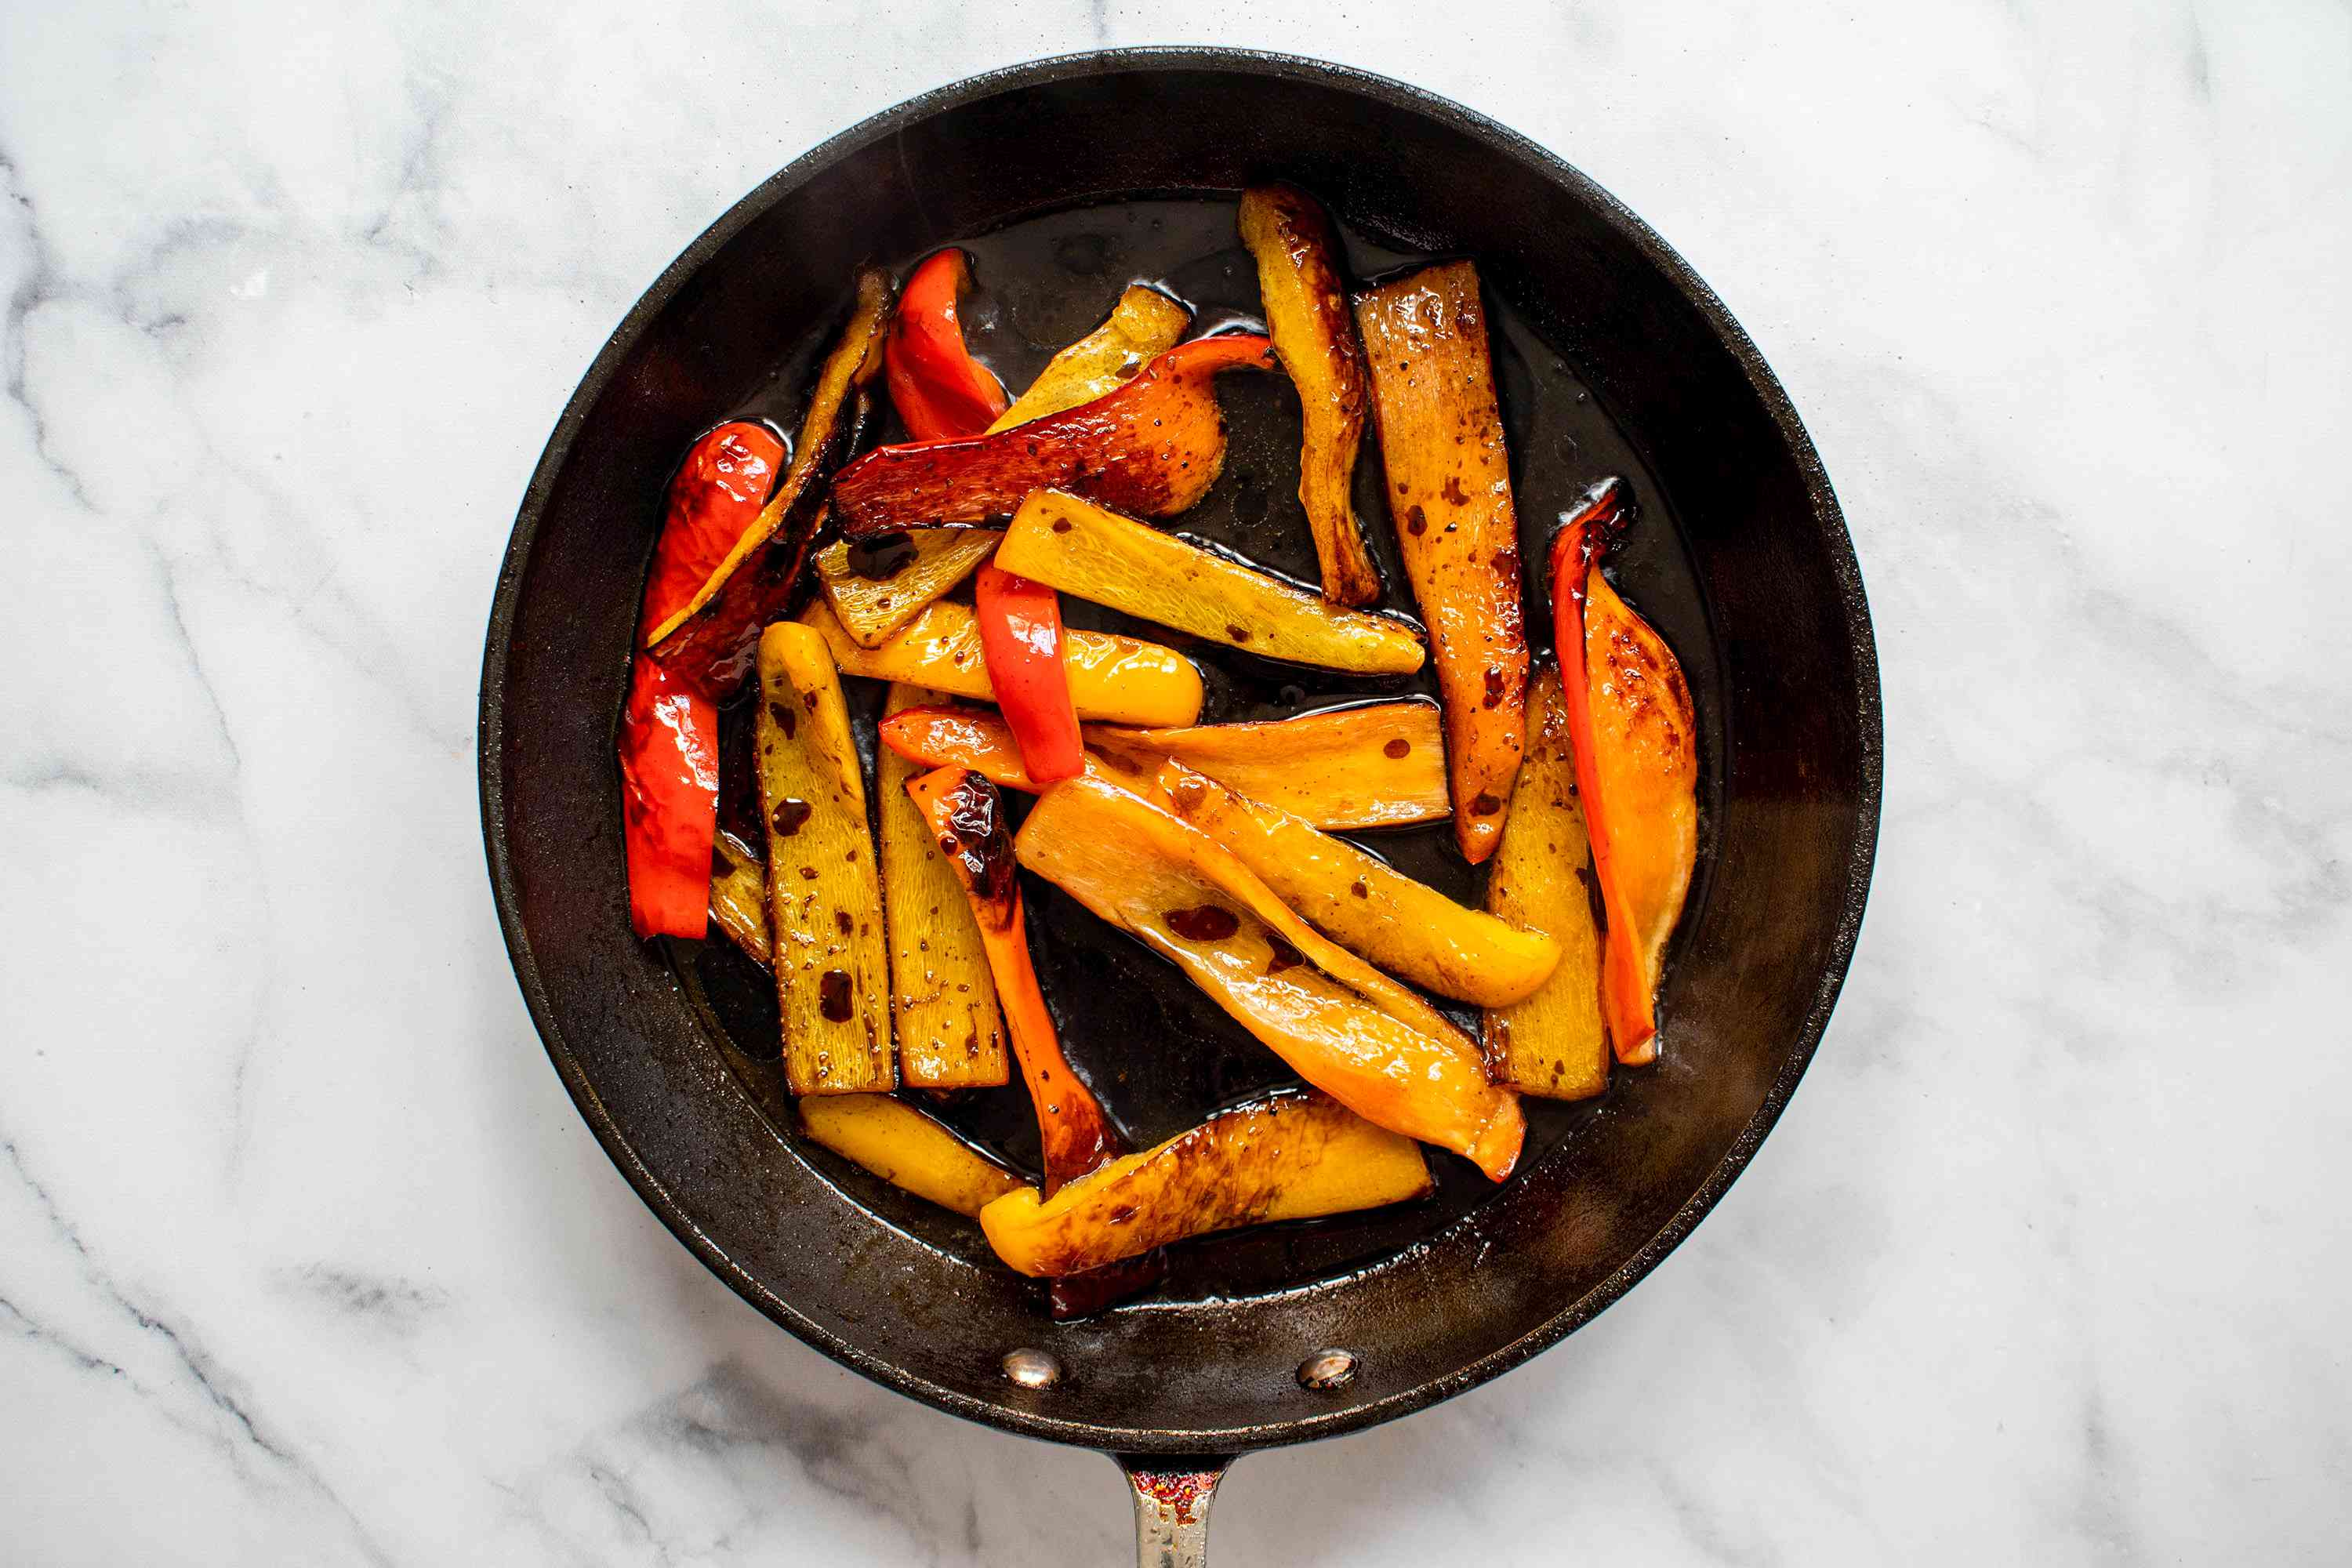 Stir the balsamic vinegar, pepper, and salt into the peppers